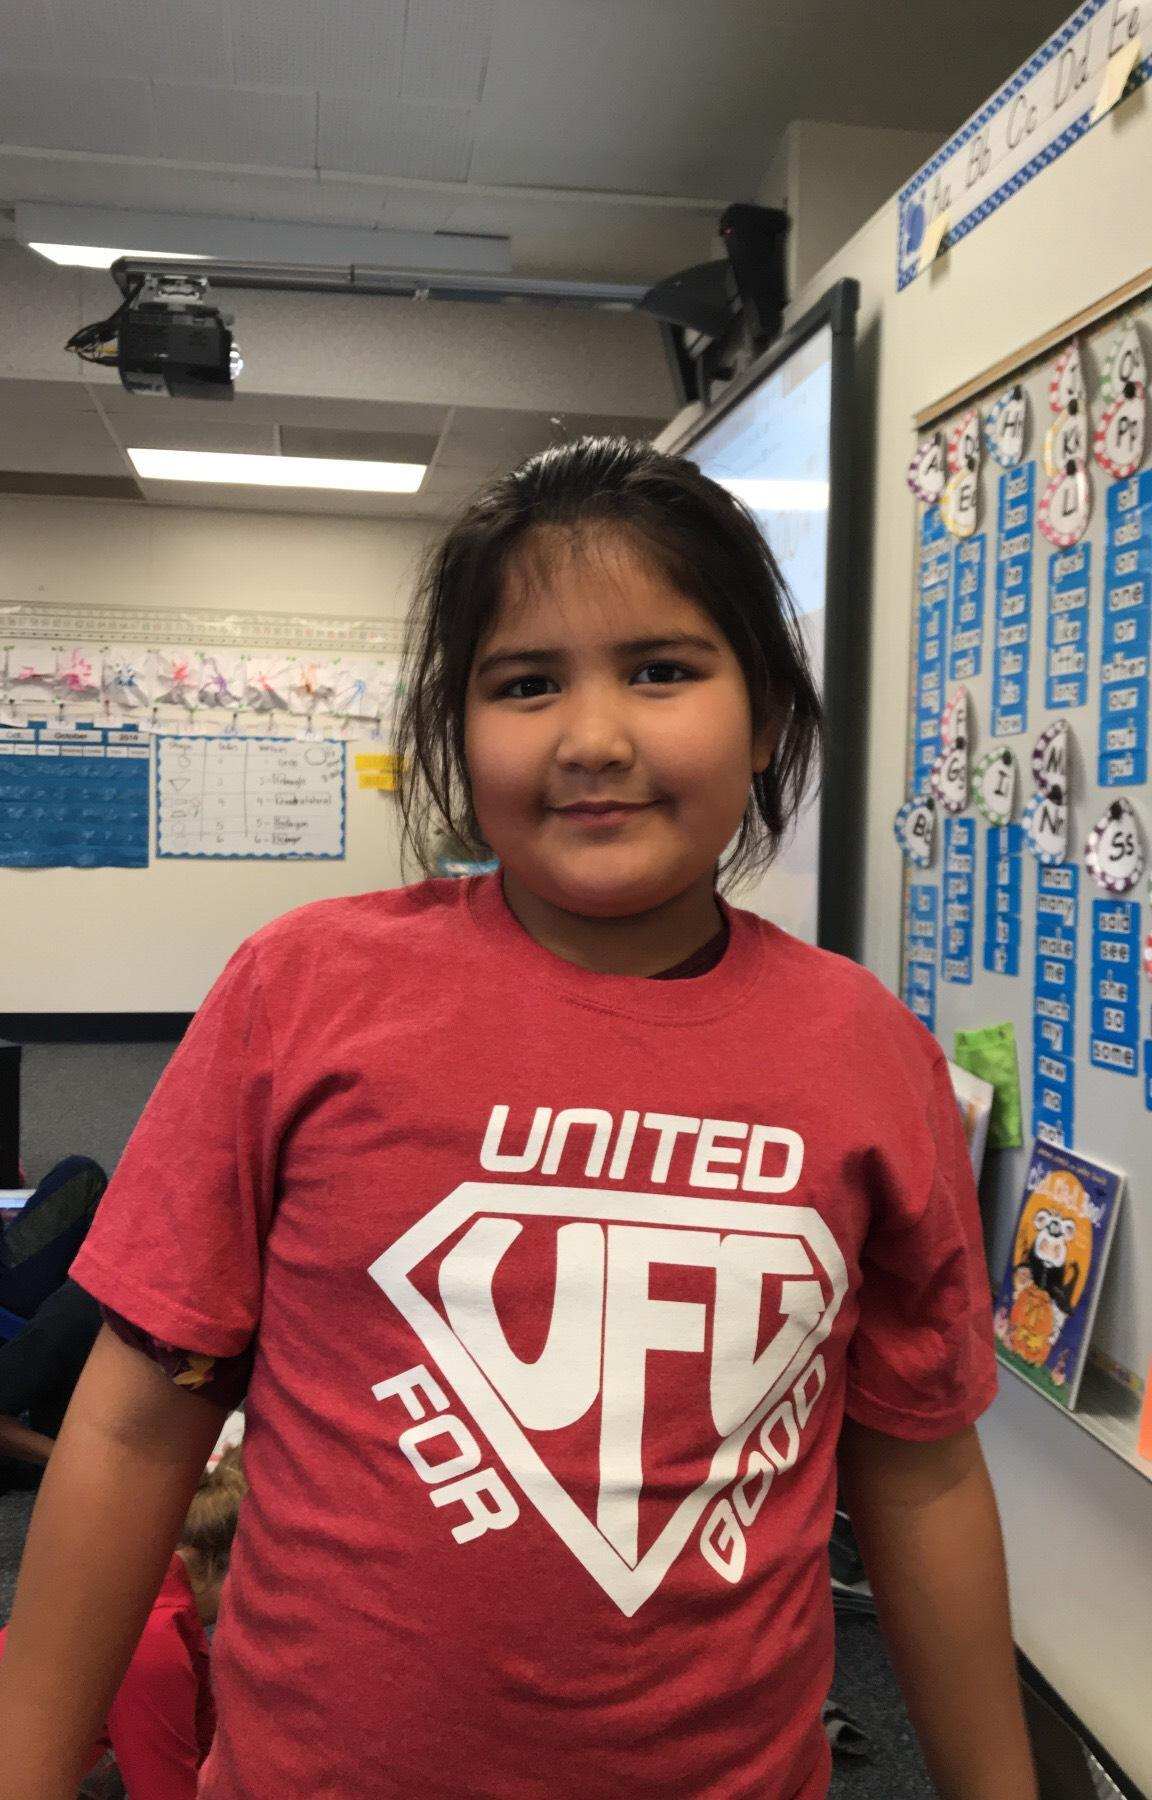 2nd grade girl supporting UNITED FOR GOOD.